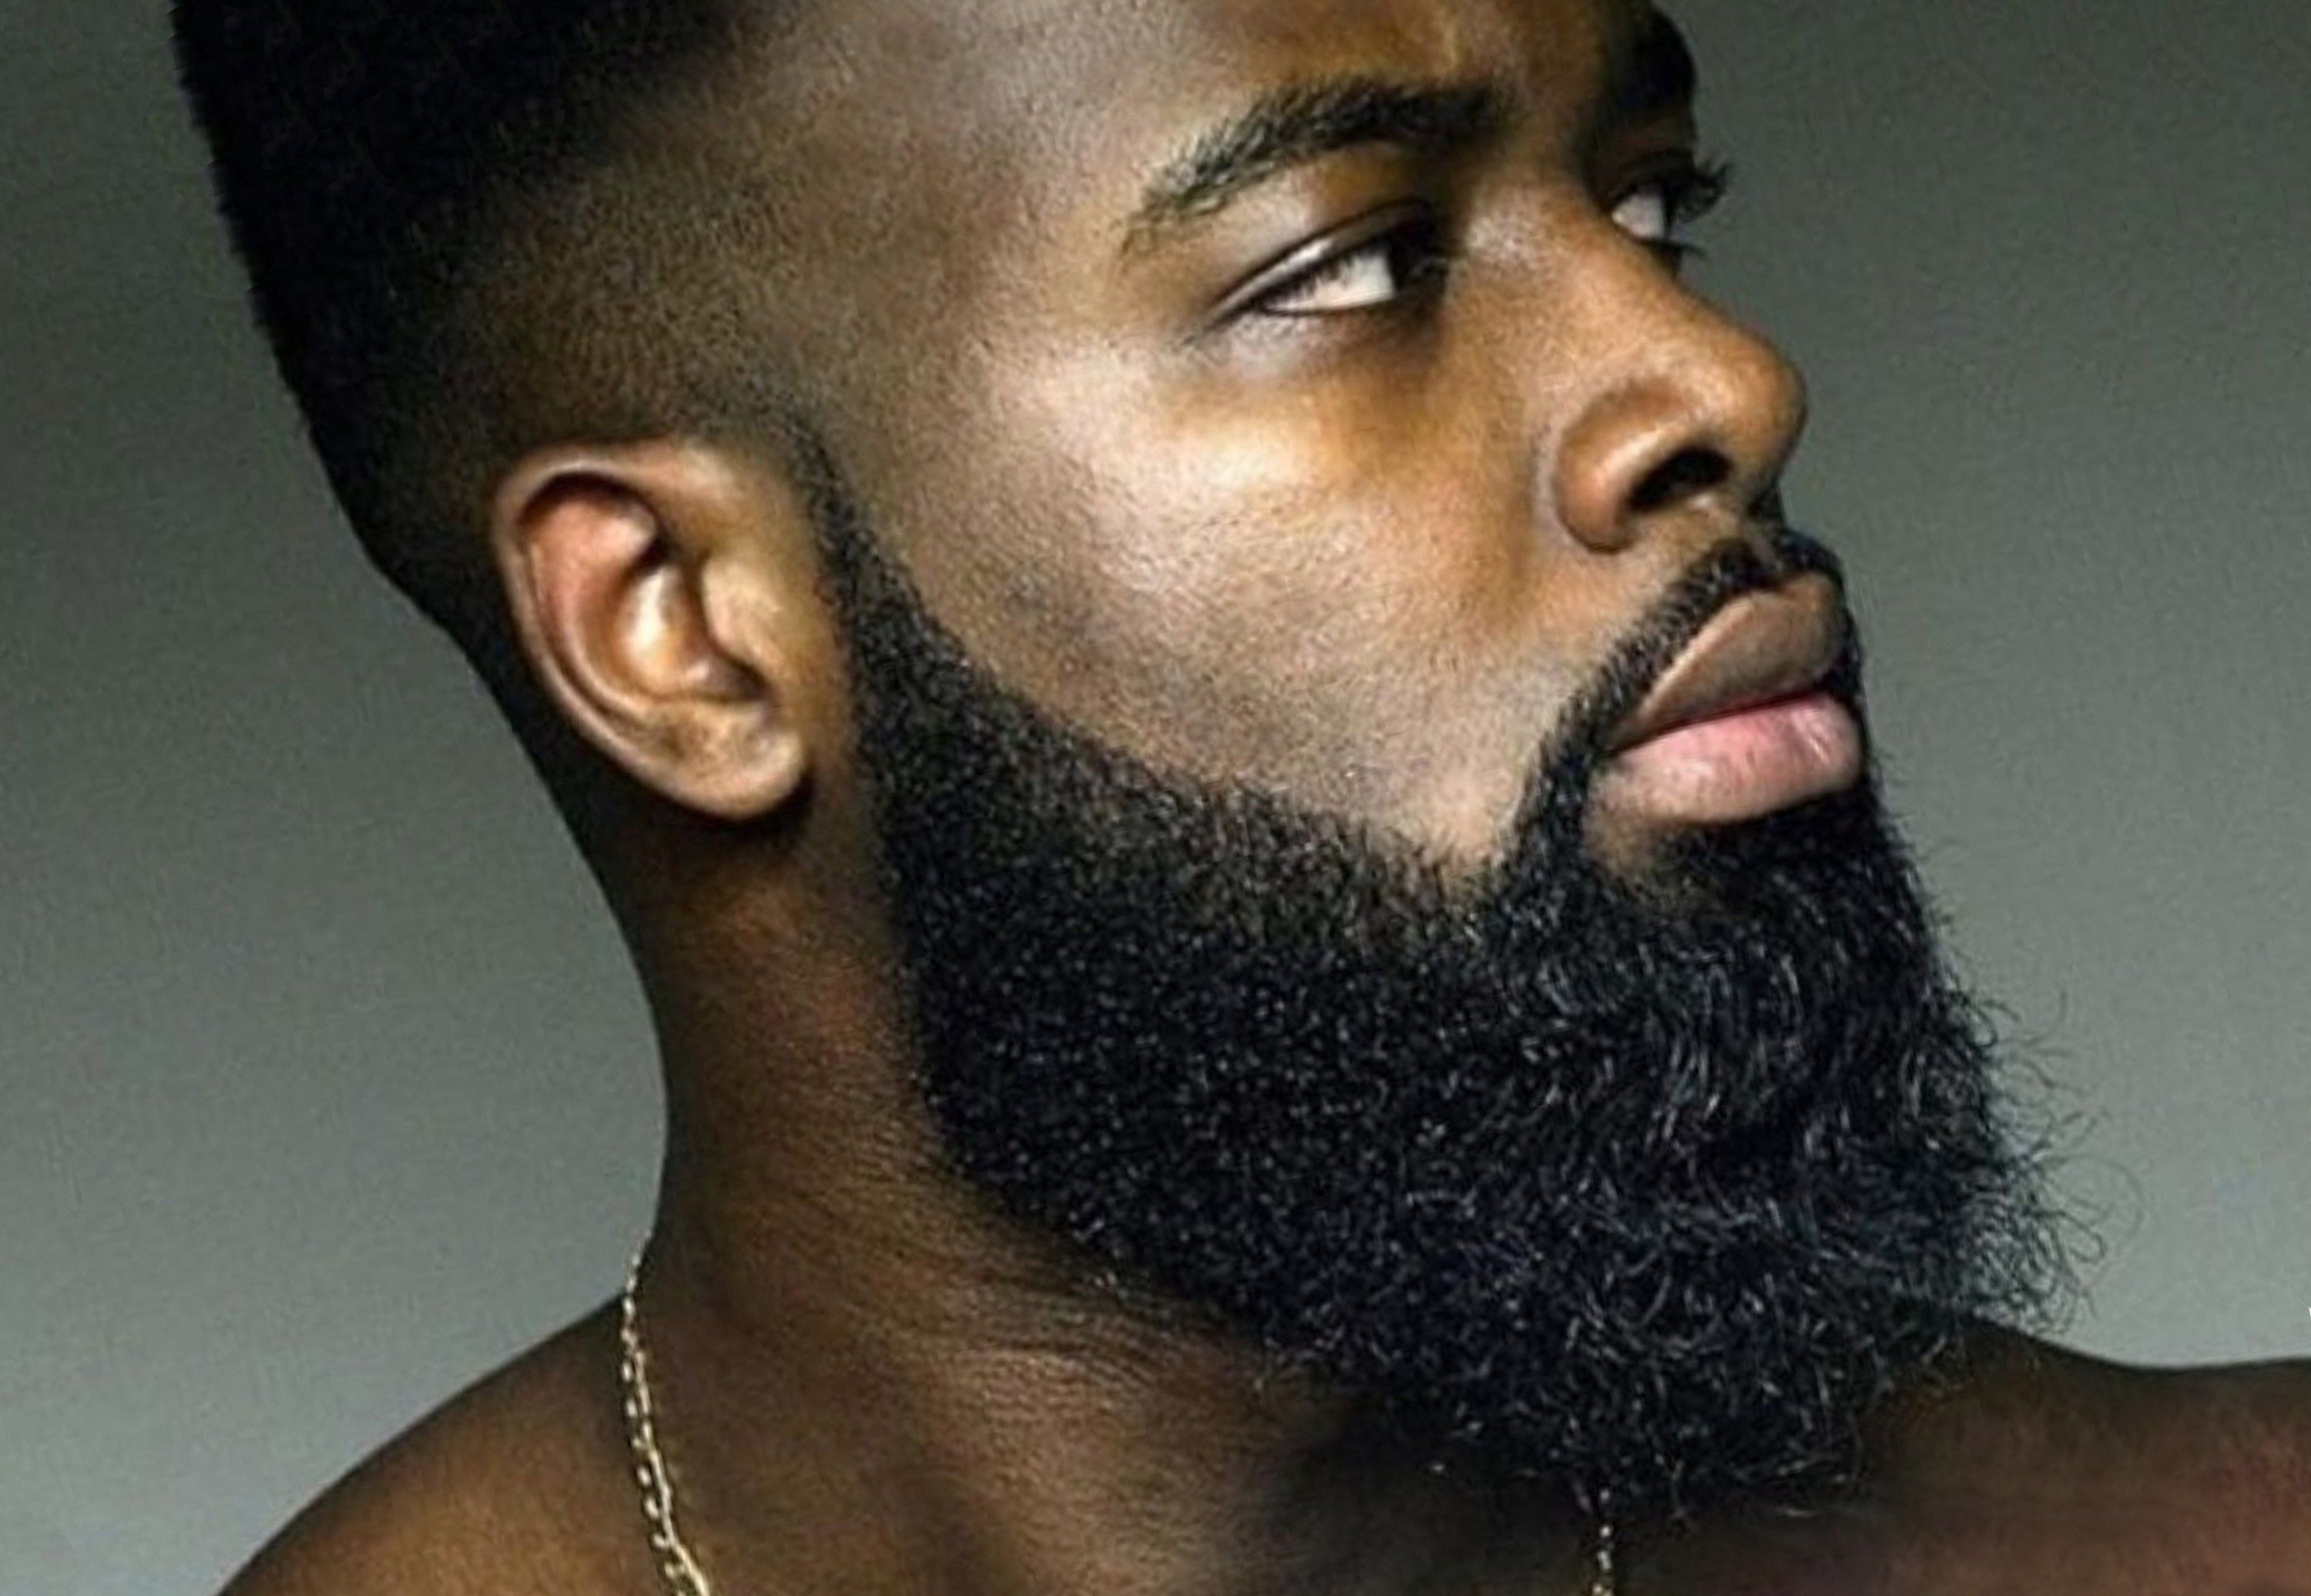 A full beard for African-Americans.